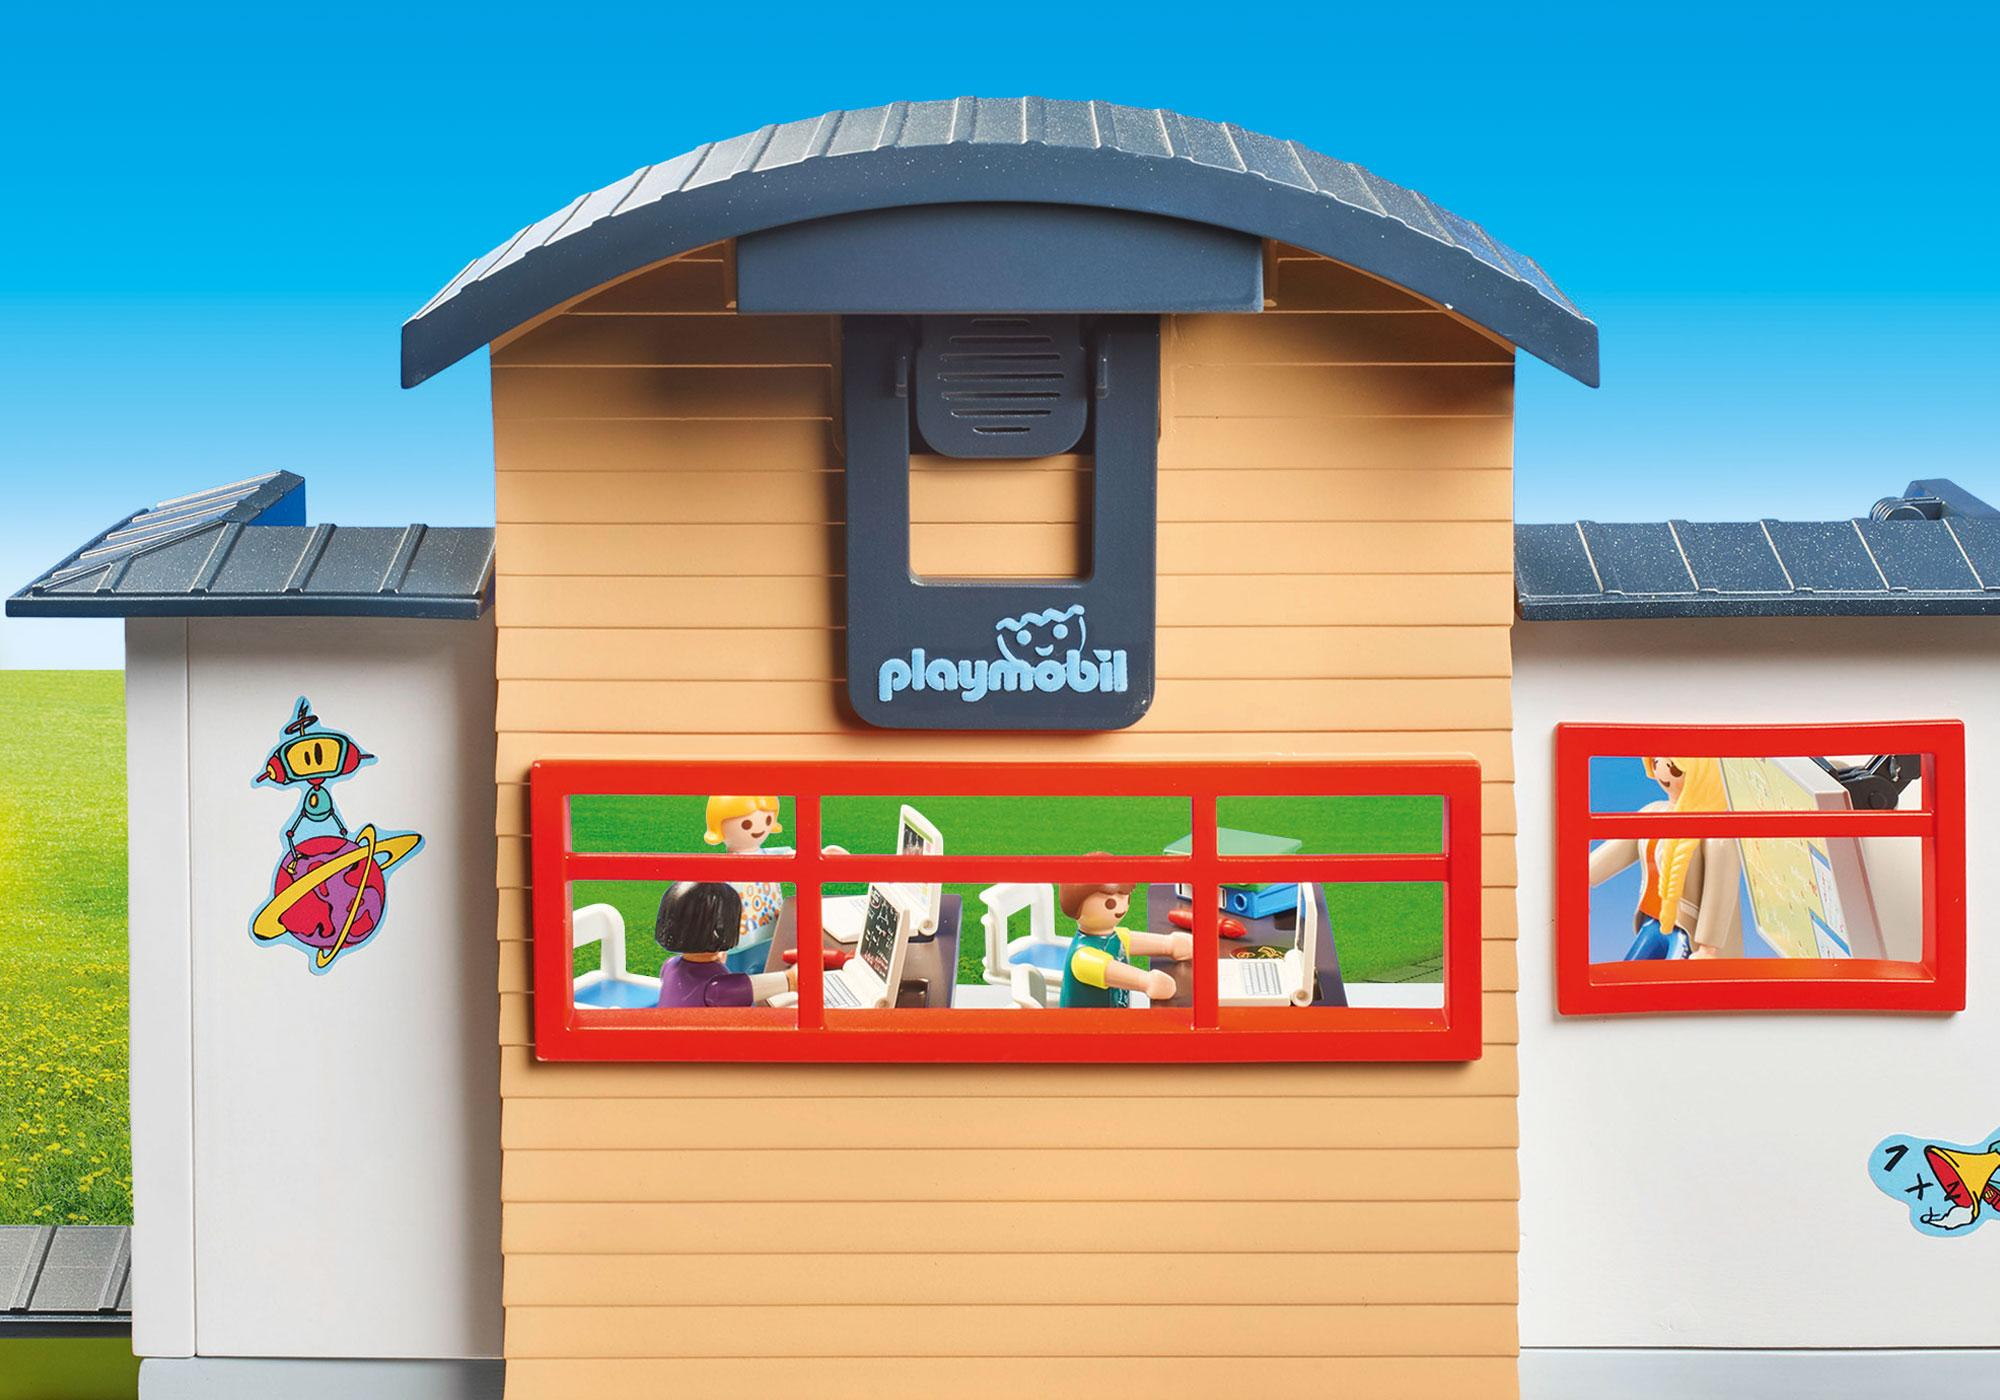 http://media.playmobil.com/i/playmobil/9453_product_extra1/Große Schule mit Einrichtung